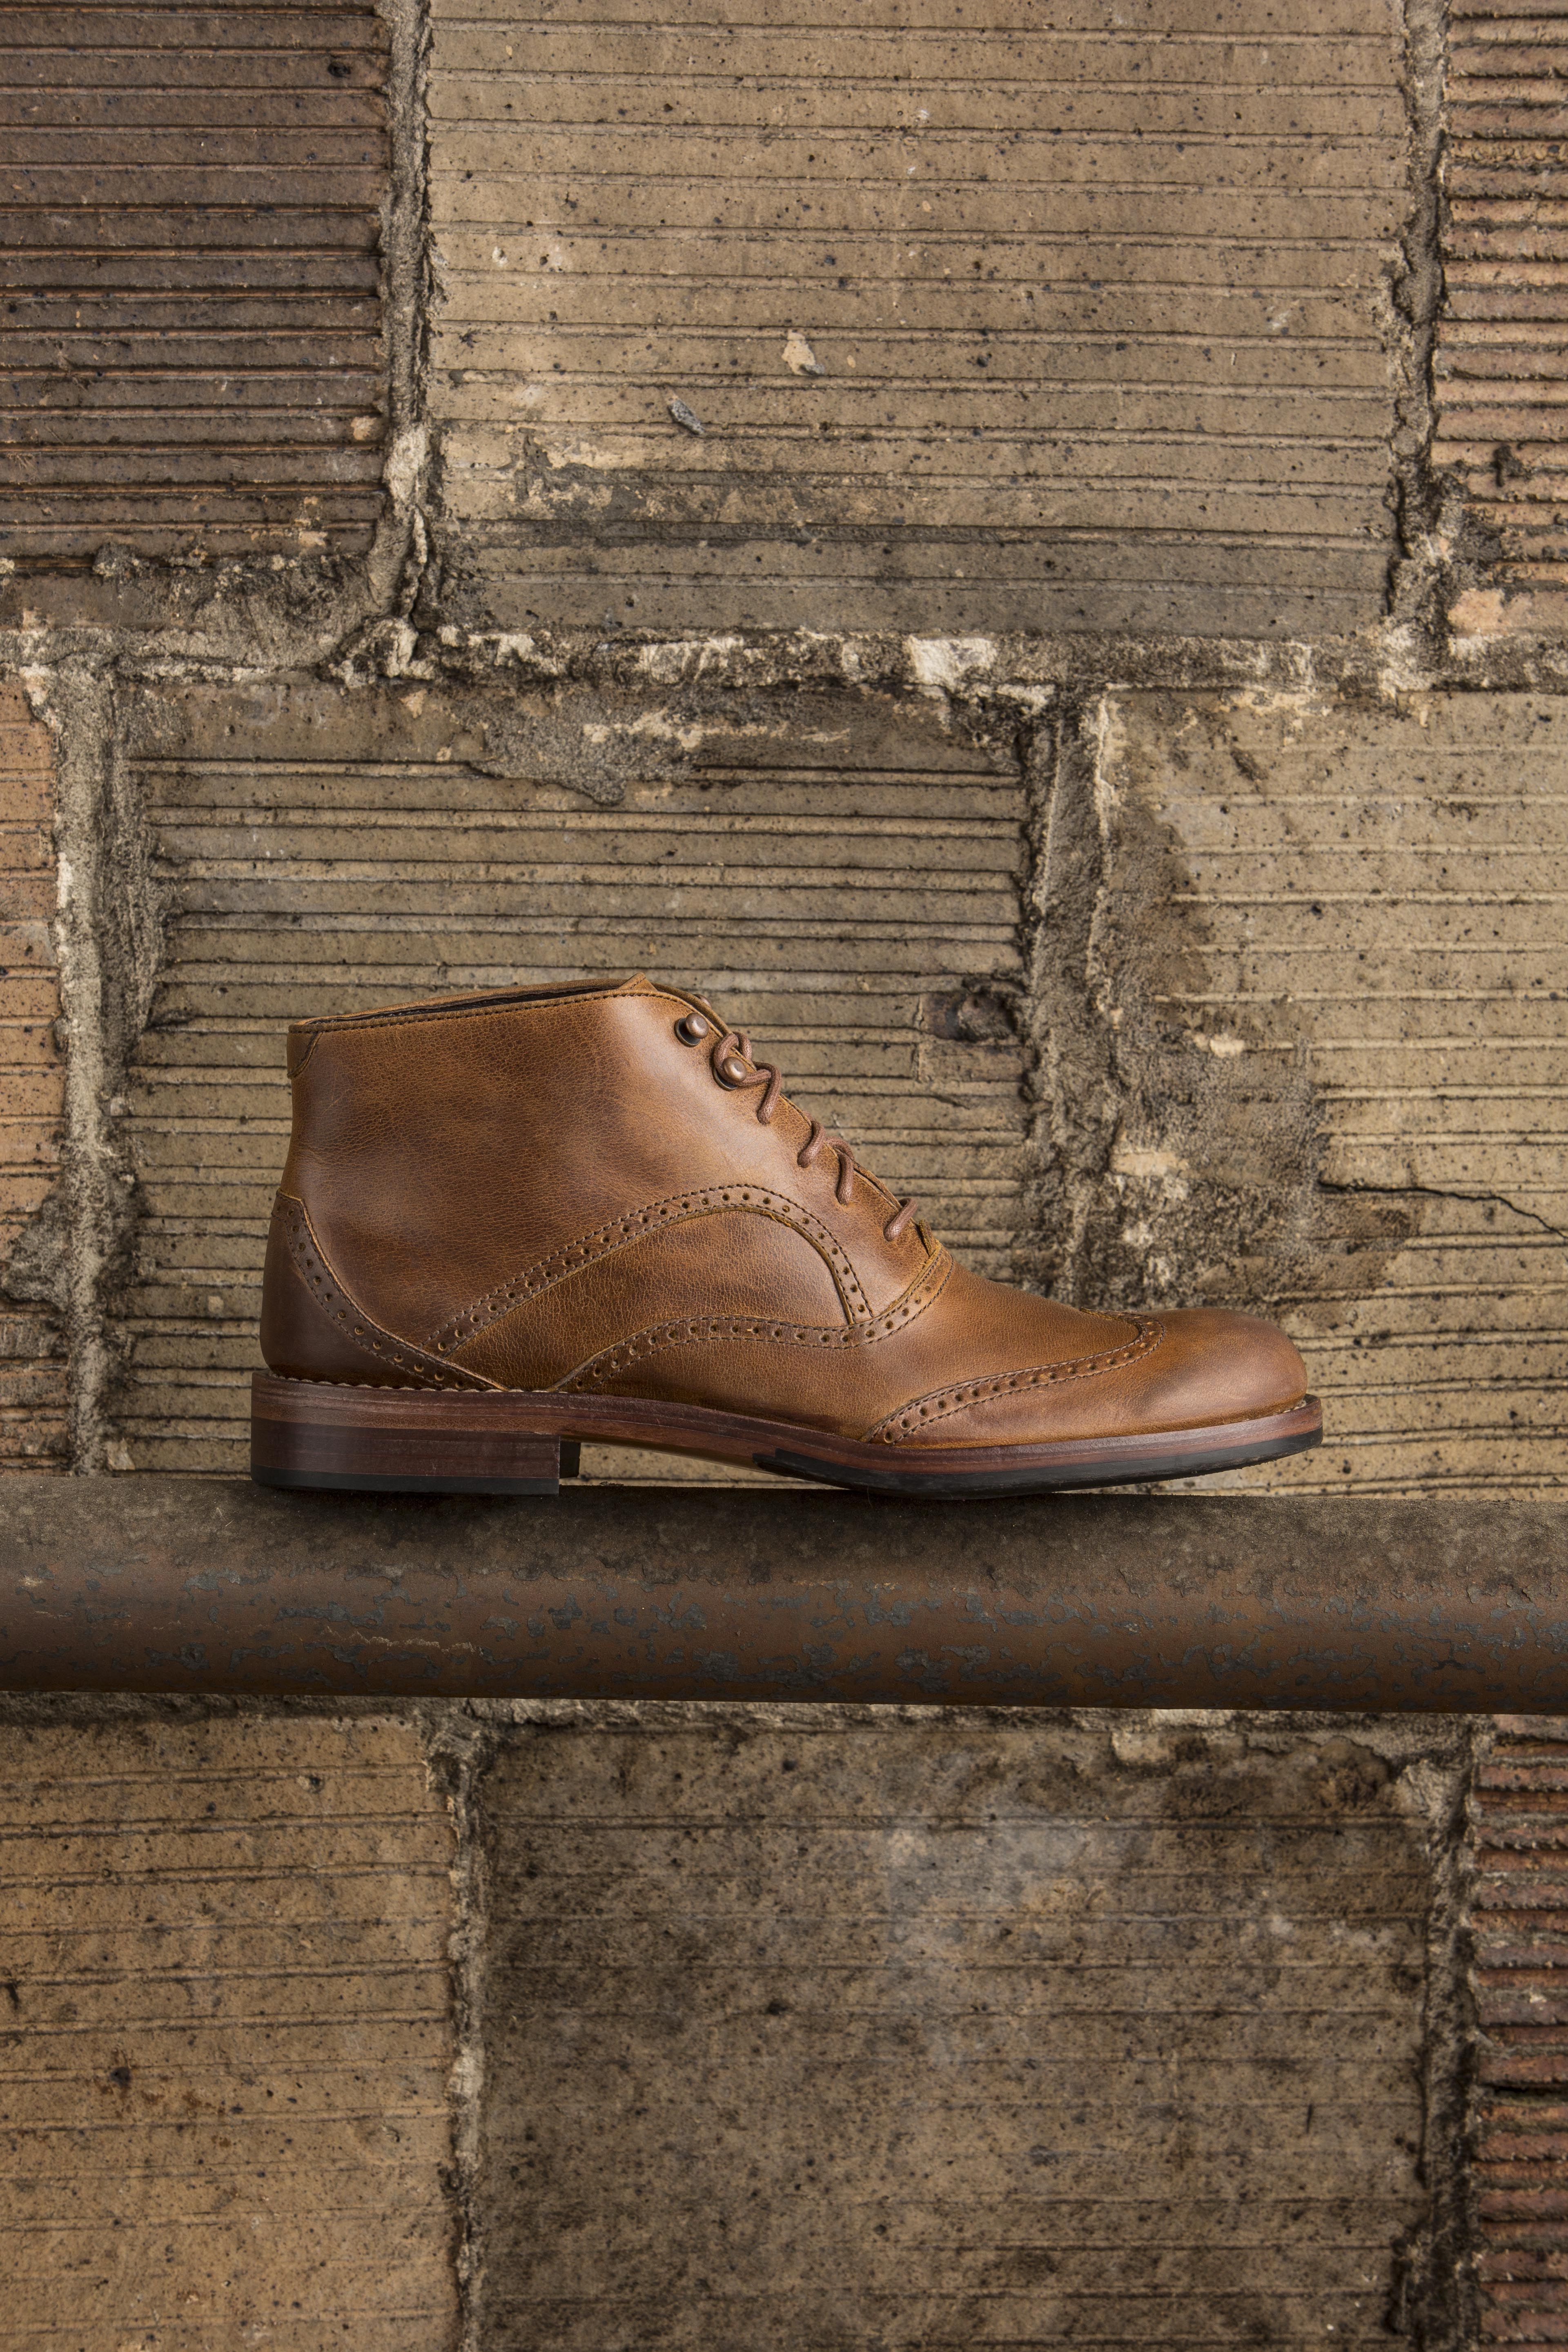 cef29973f89 Men's #1000Mile Wesley Wingtip Chukka (Tan) | Men's Boots and Shoes ...